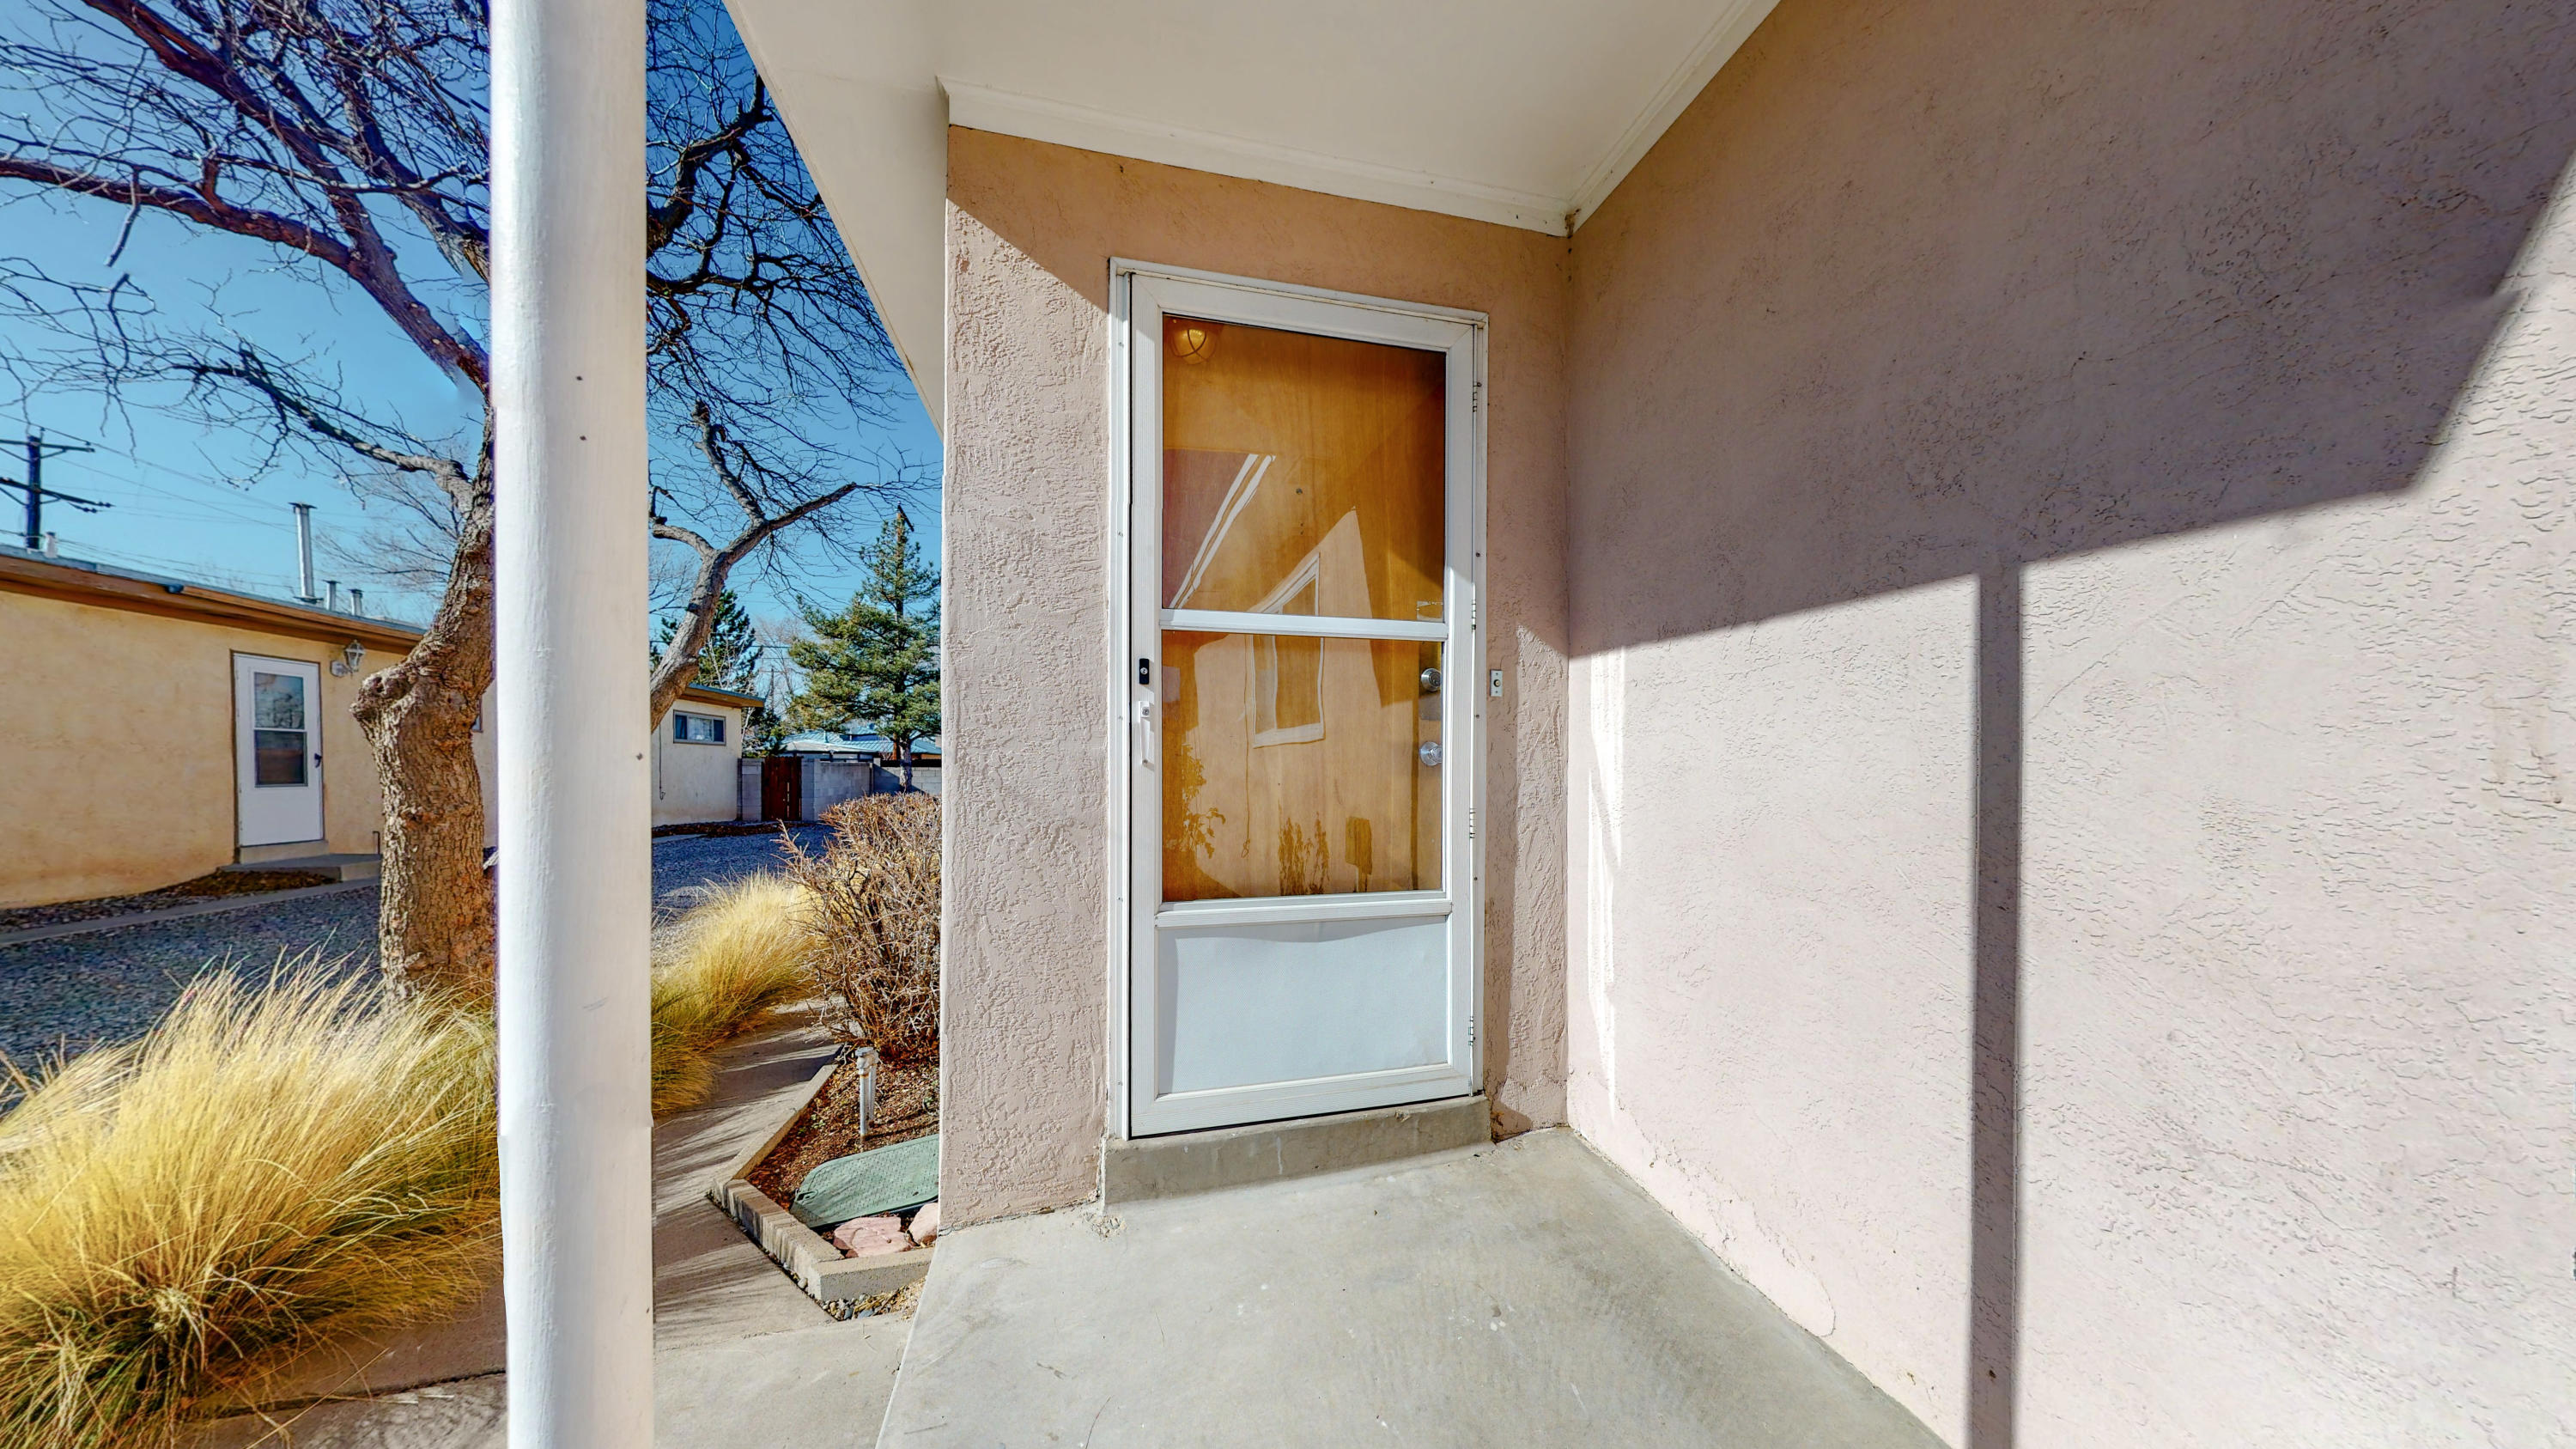 1805 & 1807 Alvarado. Great opportunity to live in one and rent the other, or rent them both for approx $1,950! Owner's unit is 3br/2ba and additional unit is 2br/1ba. Both units completely remodeled. New marble counters and wall heaters in Owner's unit. Newer roof. Refinished wood floors and new water heaters in both units. BOTH UNITS IN EXCELLENT CONDITION. Large storage shed and double carport attached. Well kept grounds and the entire neighborhood shows pride of ownership. One block from beautiful Alvarado Park, easy walking distance to Starbucks coffee, close to freeway access, and close to shopping and dining in all directions.